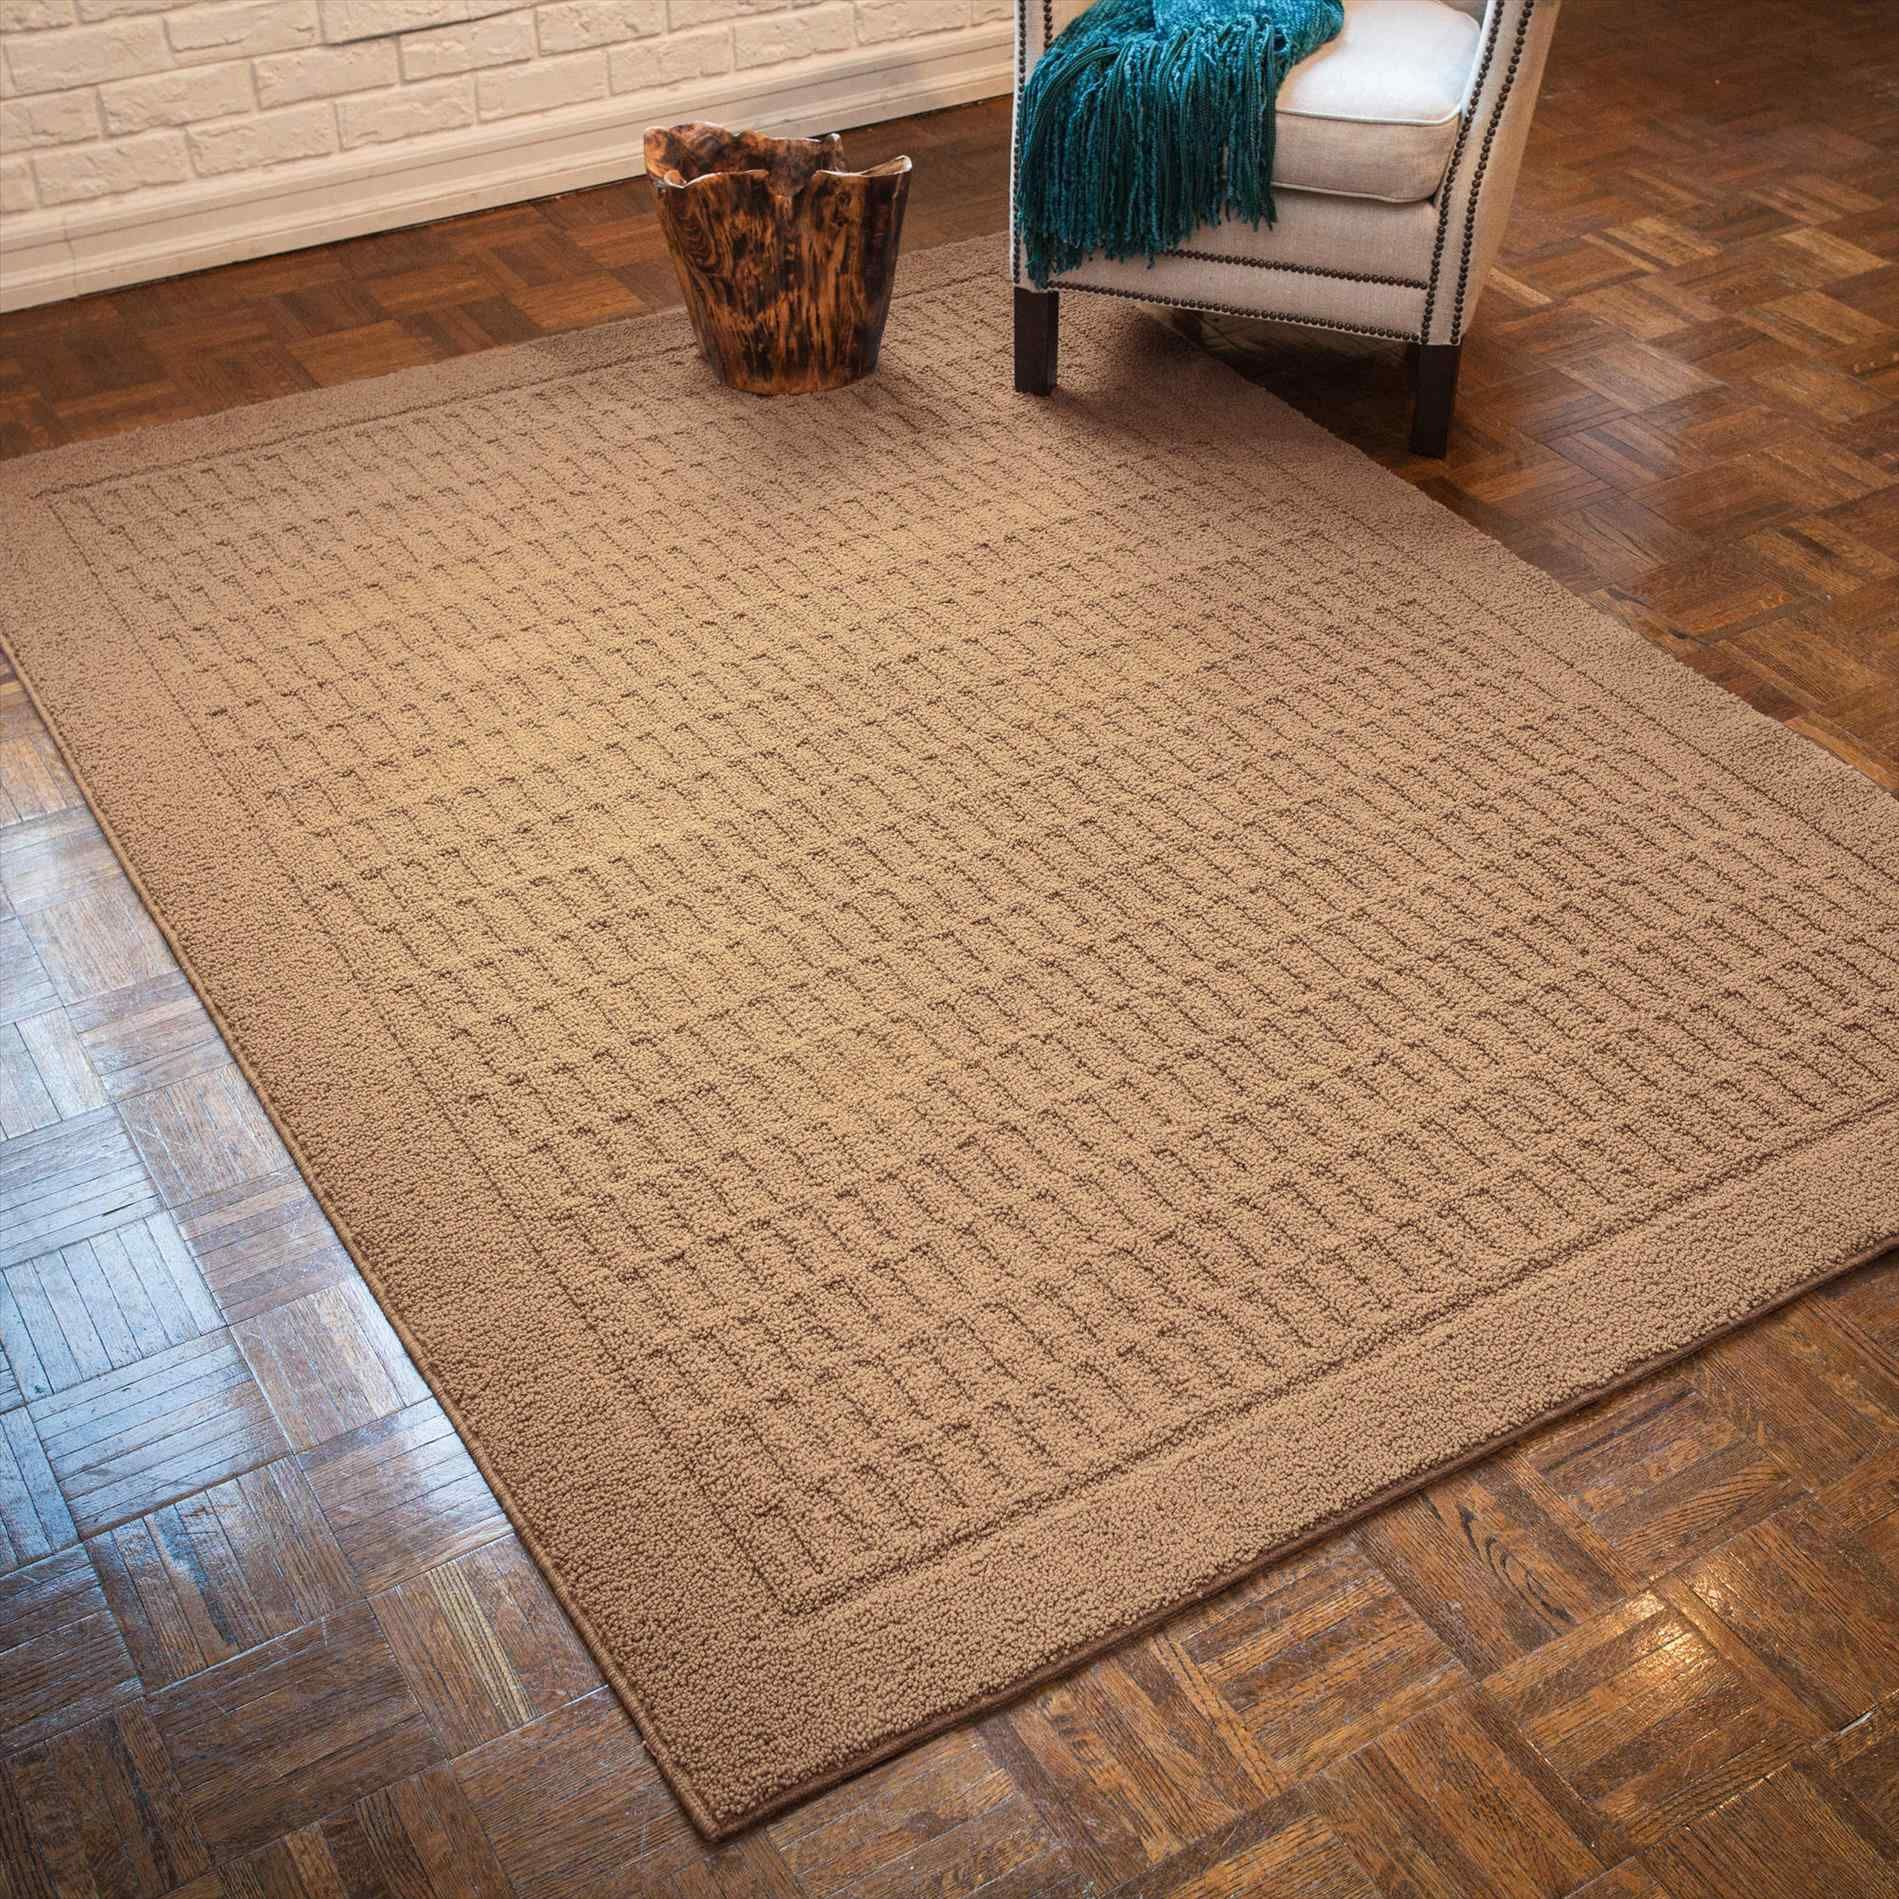 Contemporary Area Rugs 7x9 Nylon Rug Sets Online Accent